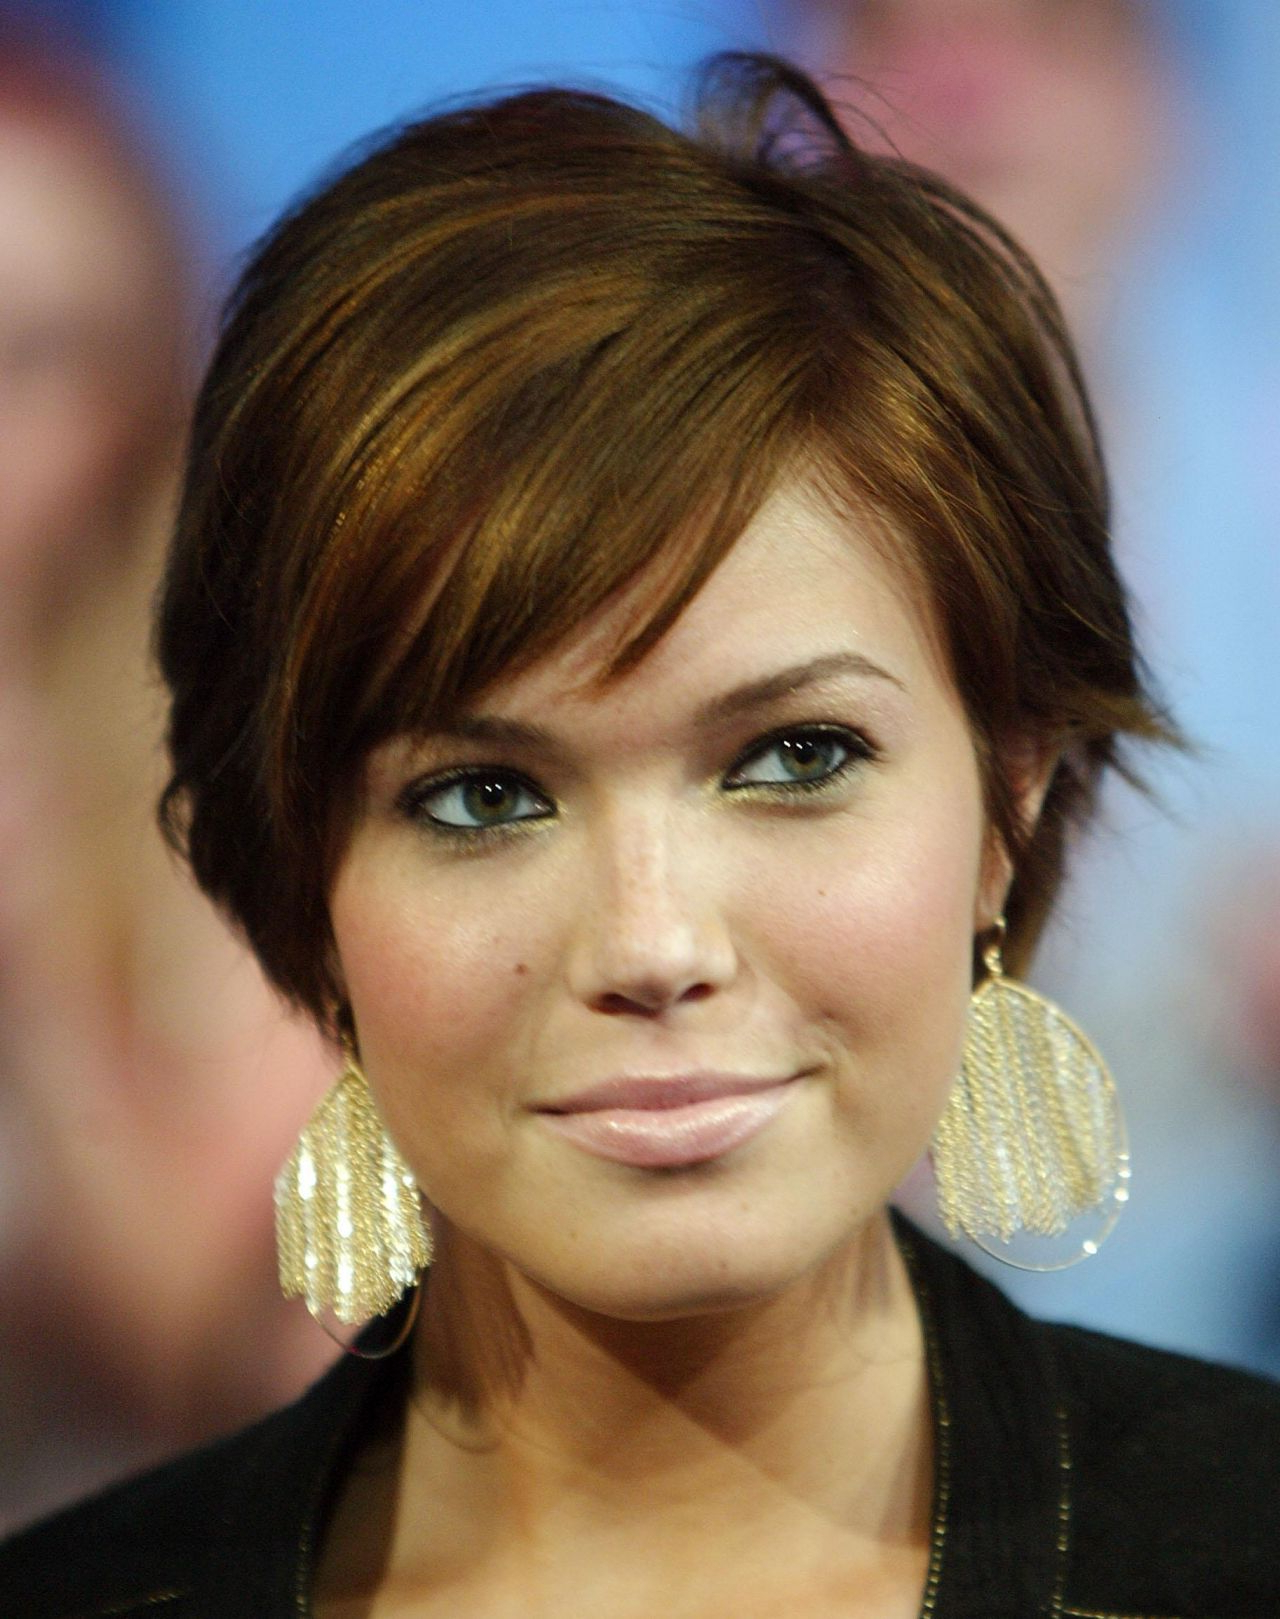 Short Female Hairstyles For Round Faces 2018 | Beauty | Pinterest Within Short Haircuts For A Round Face (View 3 of 25)